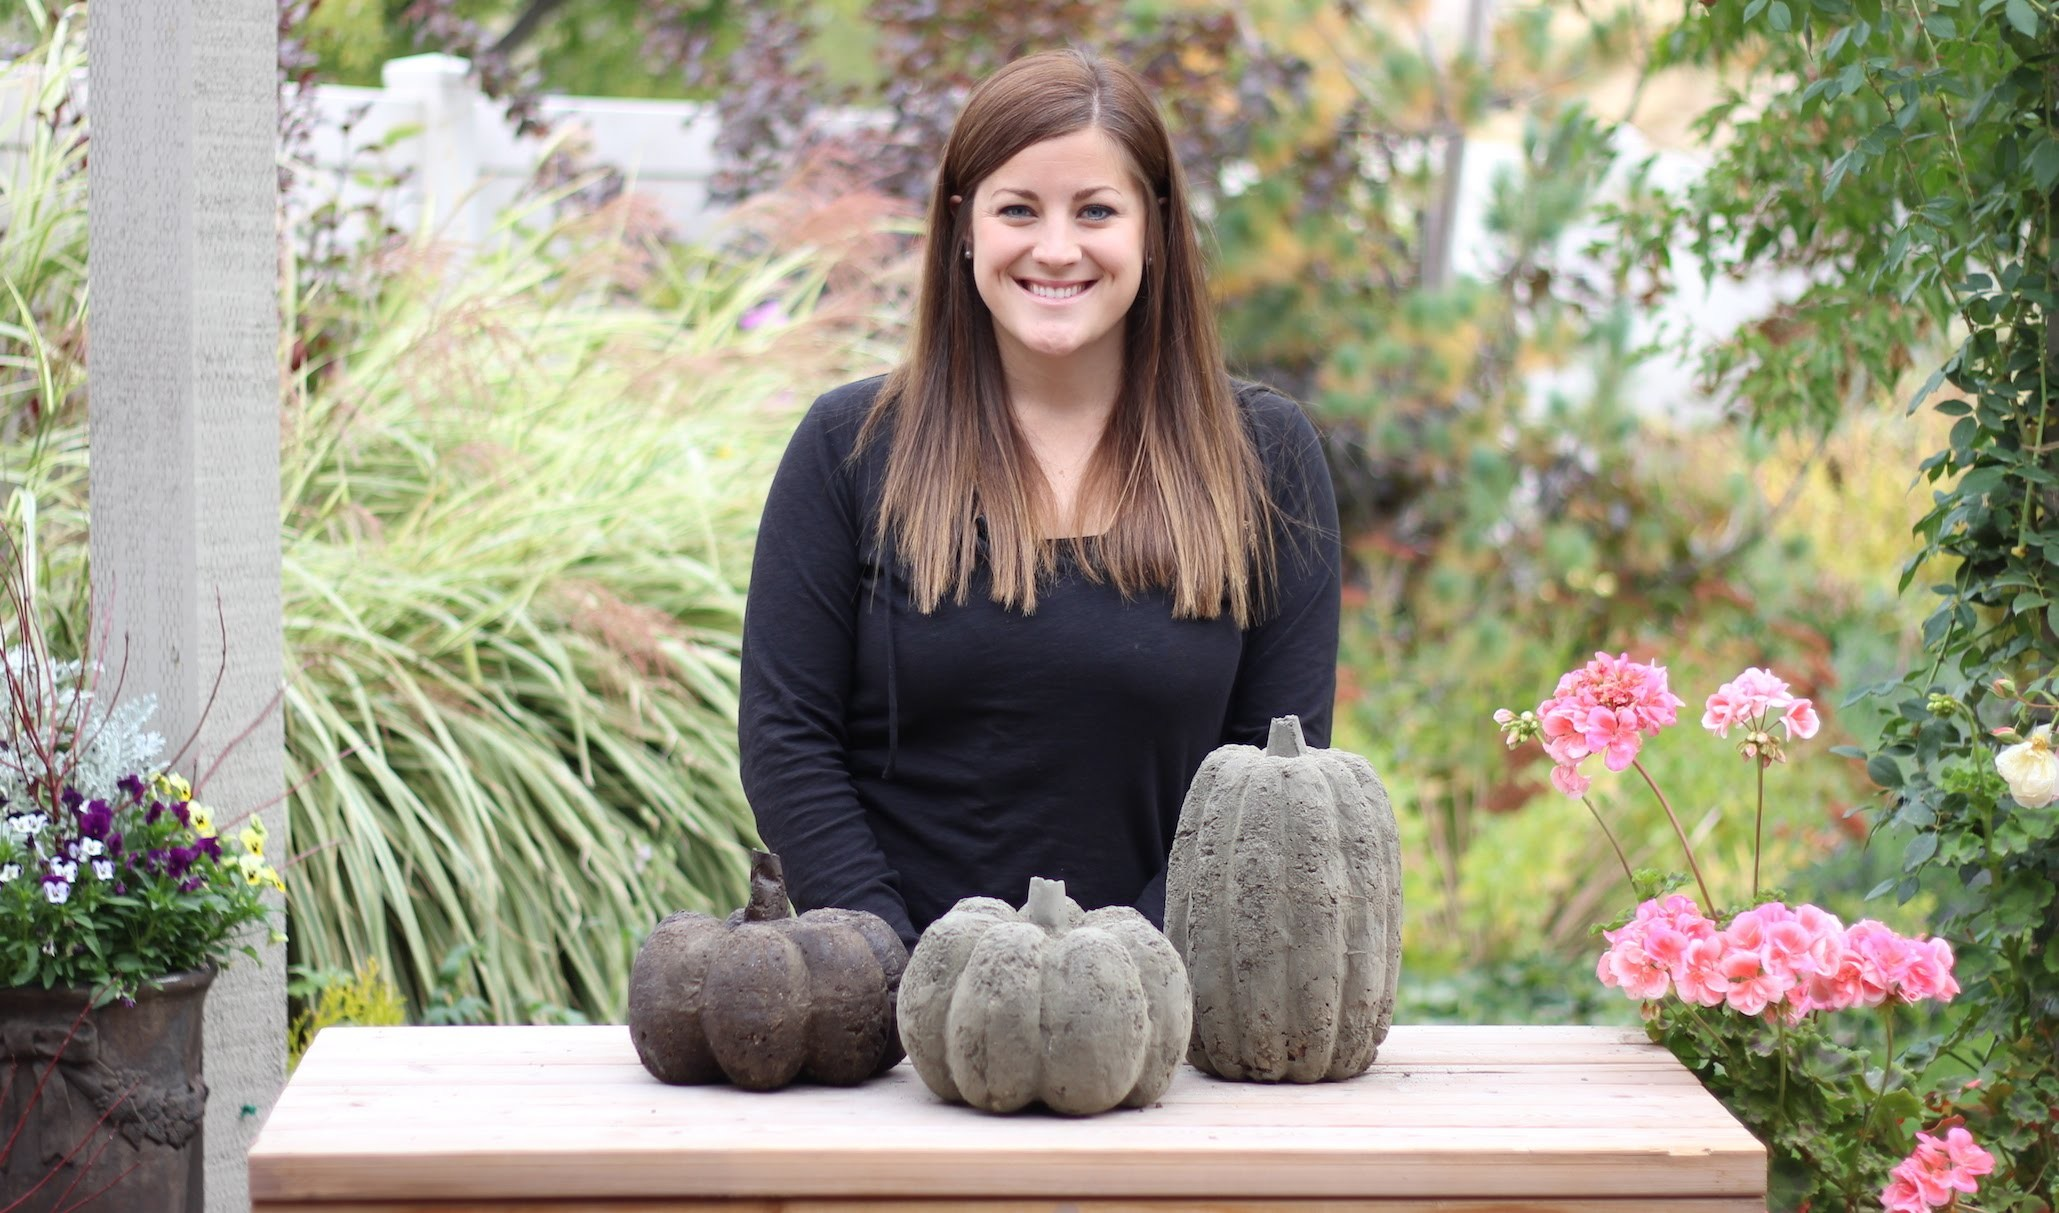 DIY Concrete Pumpkins for Fall